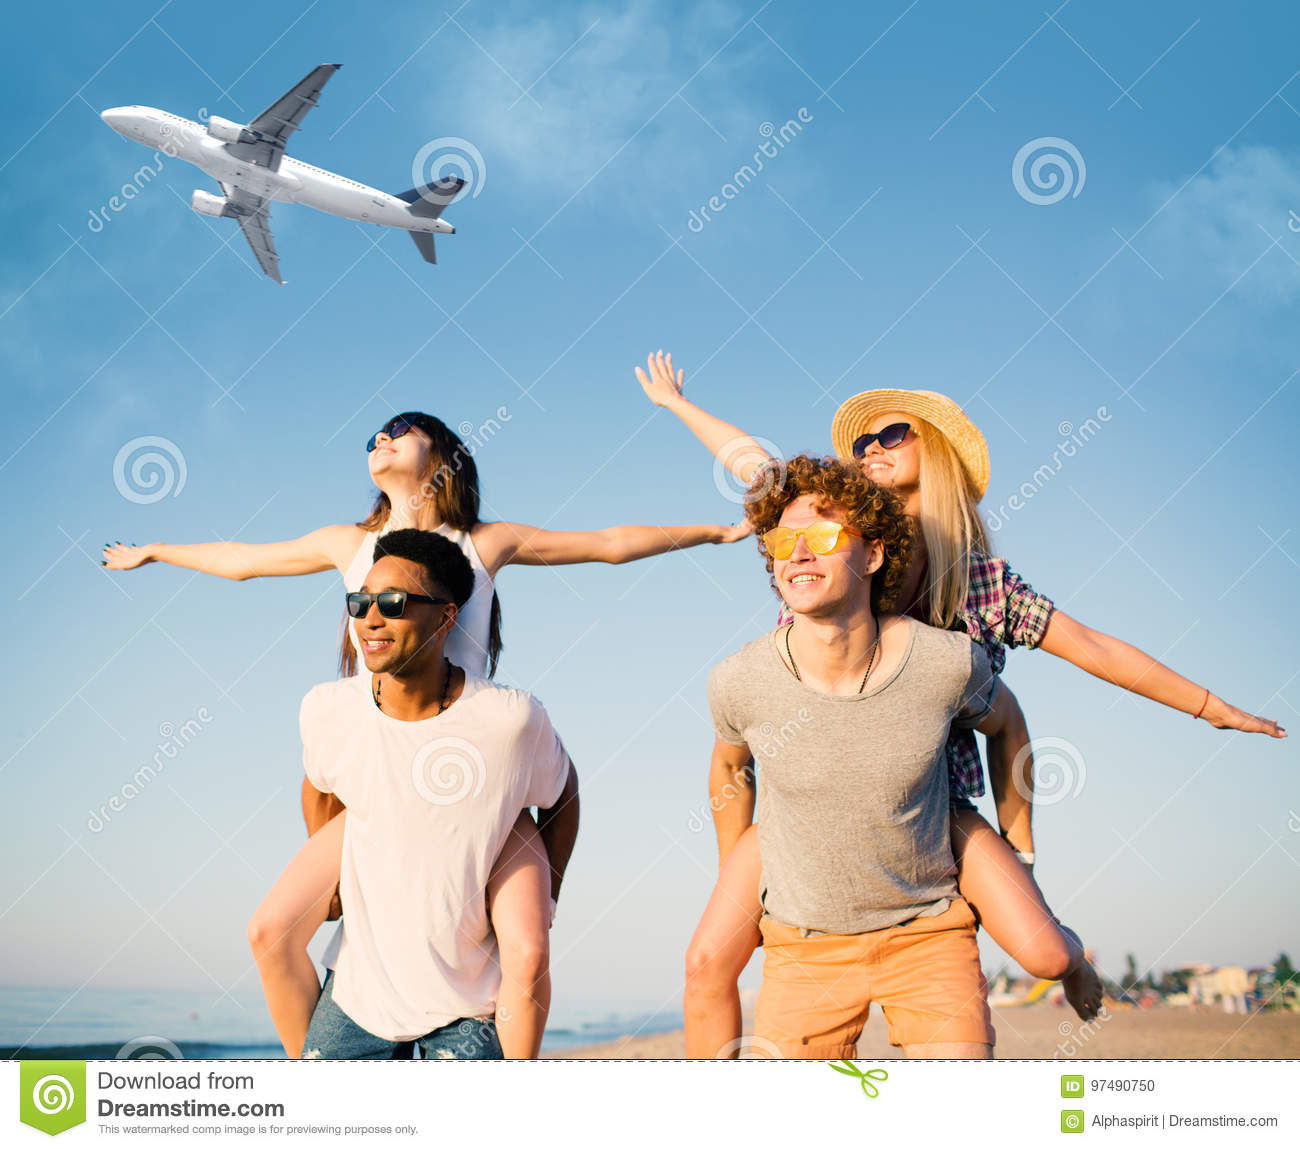 Happy smiling couples playing at the beach with aircraft in the sky